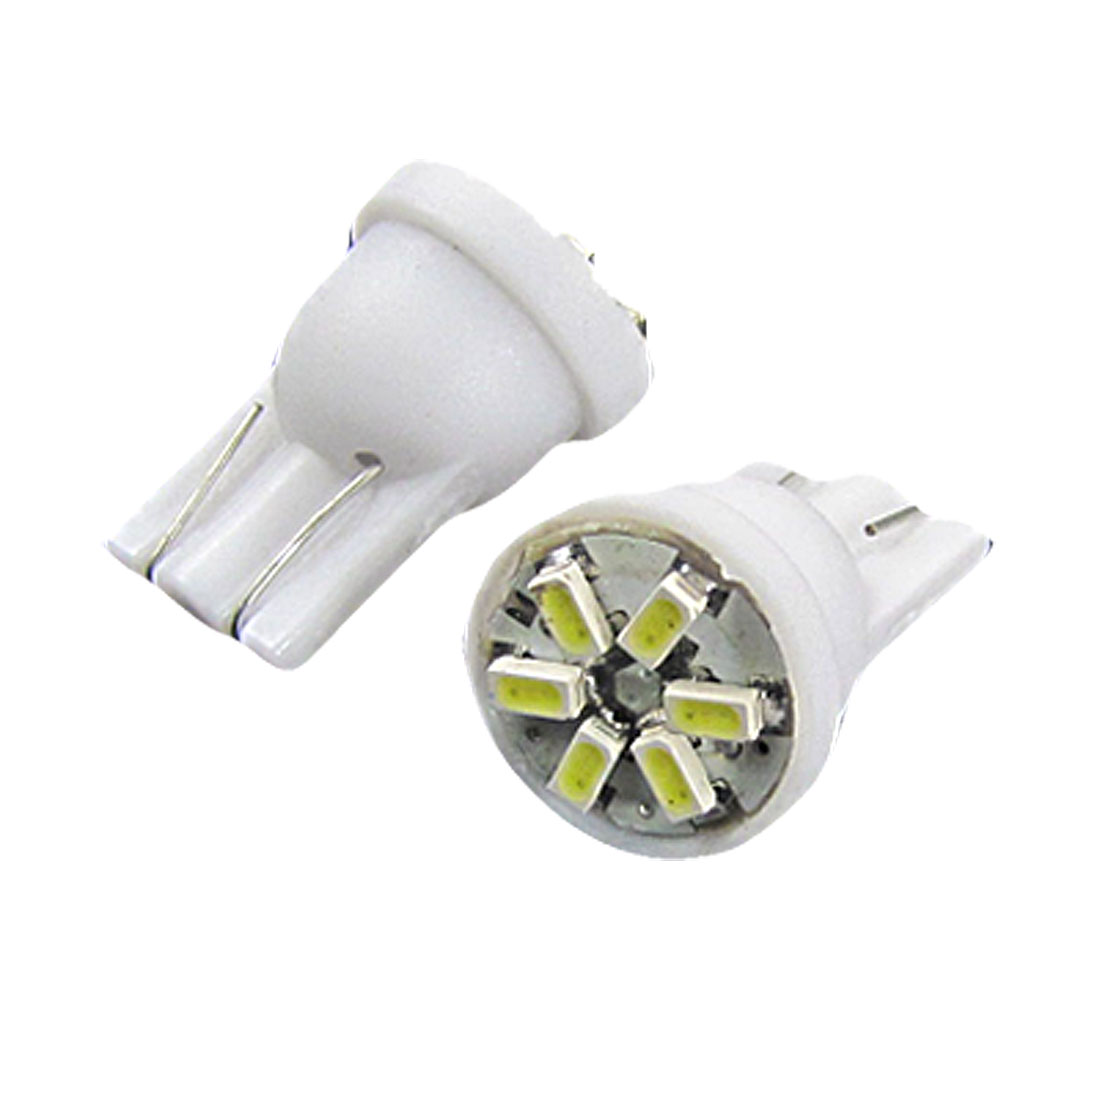 2 Pcs T10 W5W 6 1206 SMD LED Bulbs White Signal Indicator Wedge Lights for Car